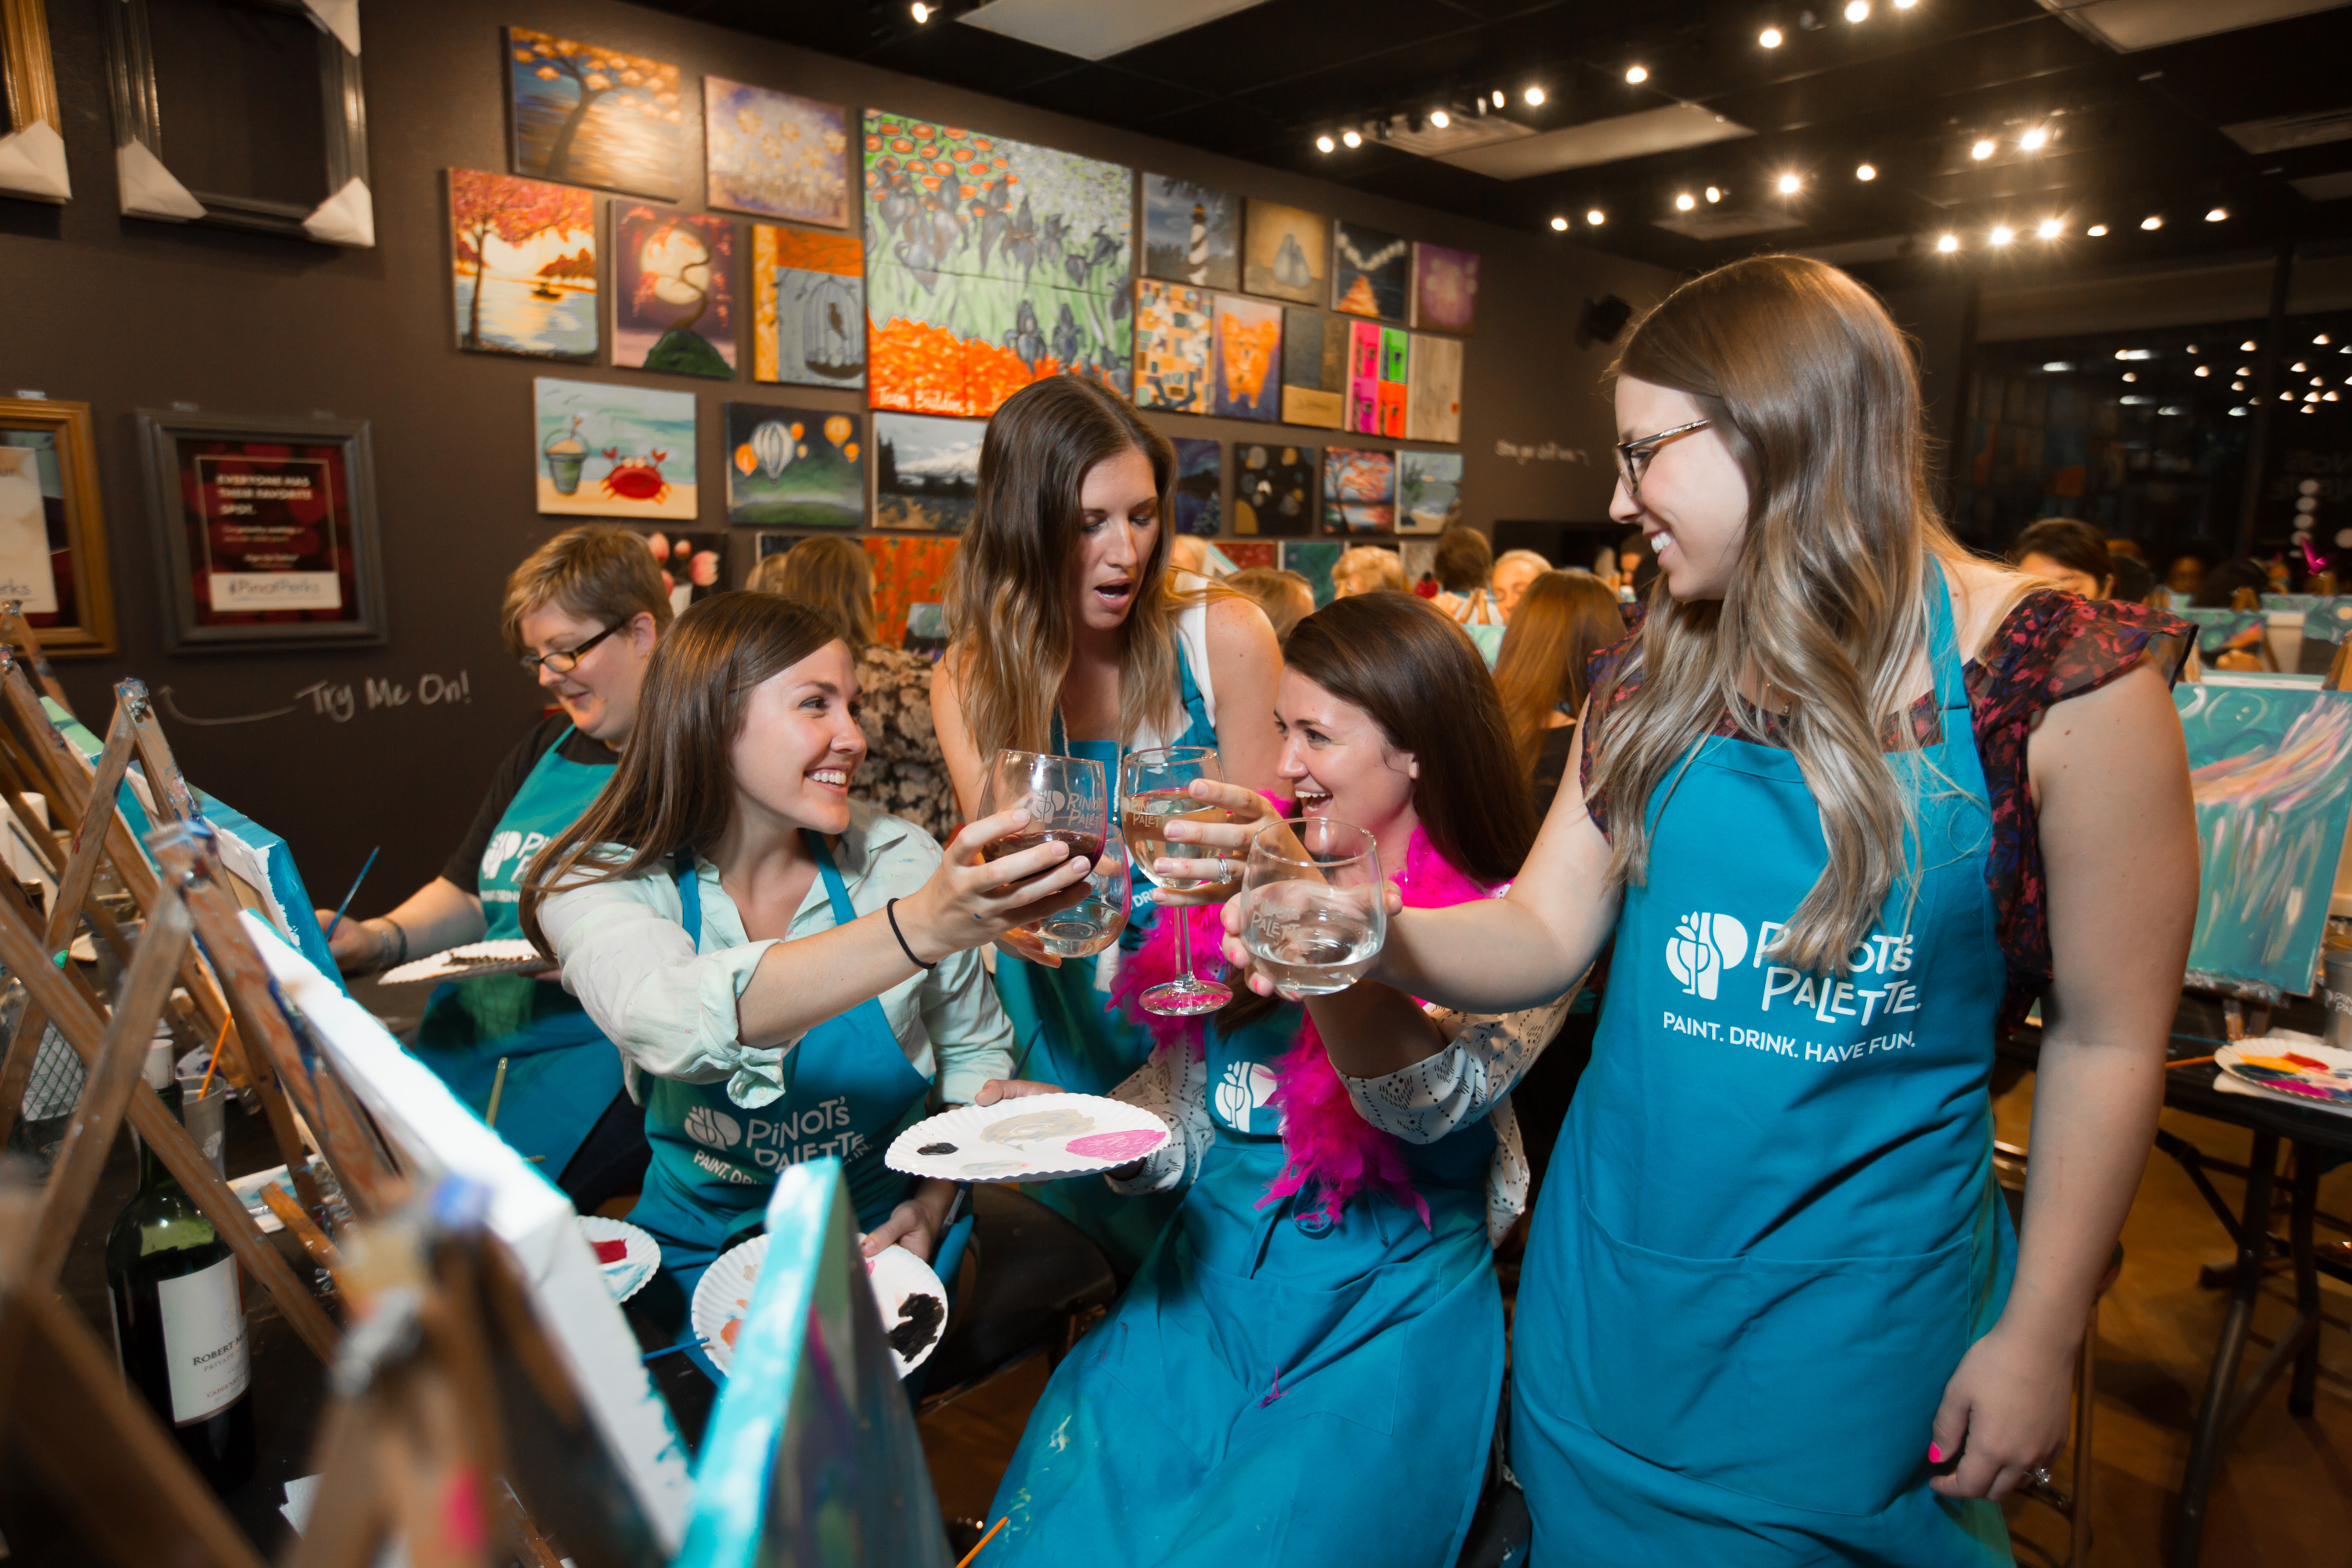 Private Parties At Pinot's Palette: What Are They All About?